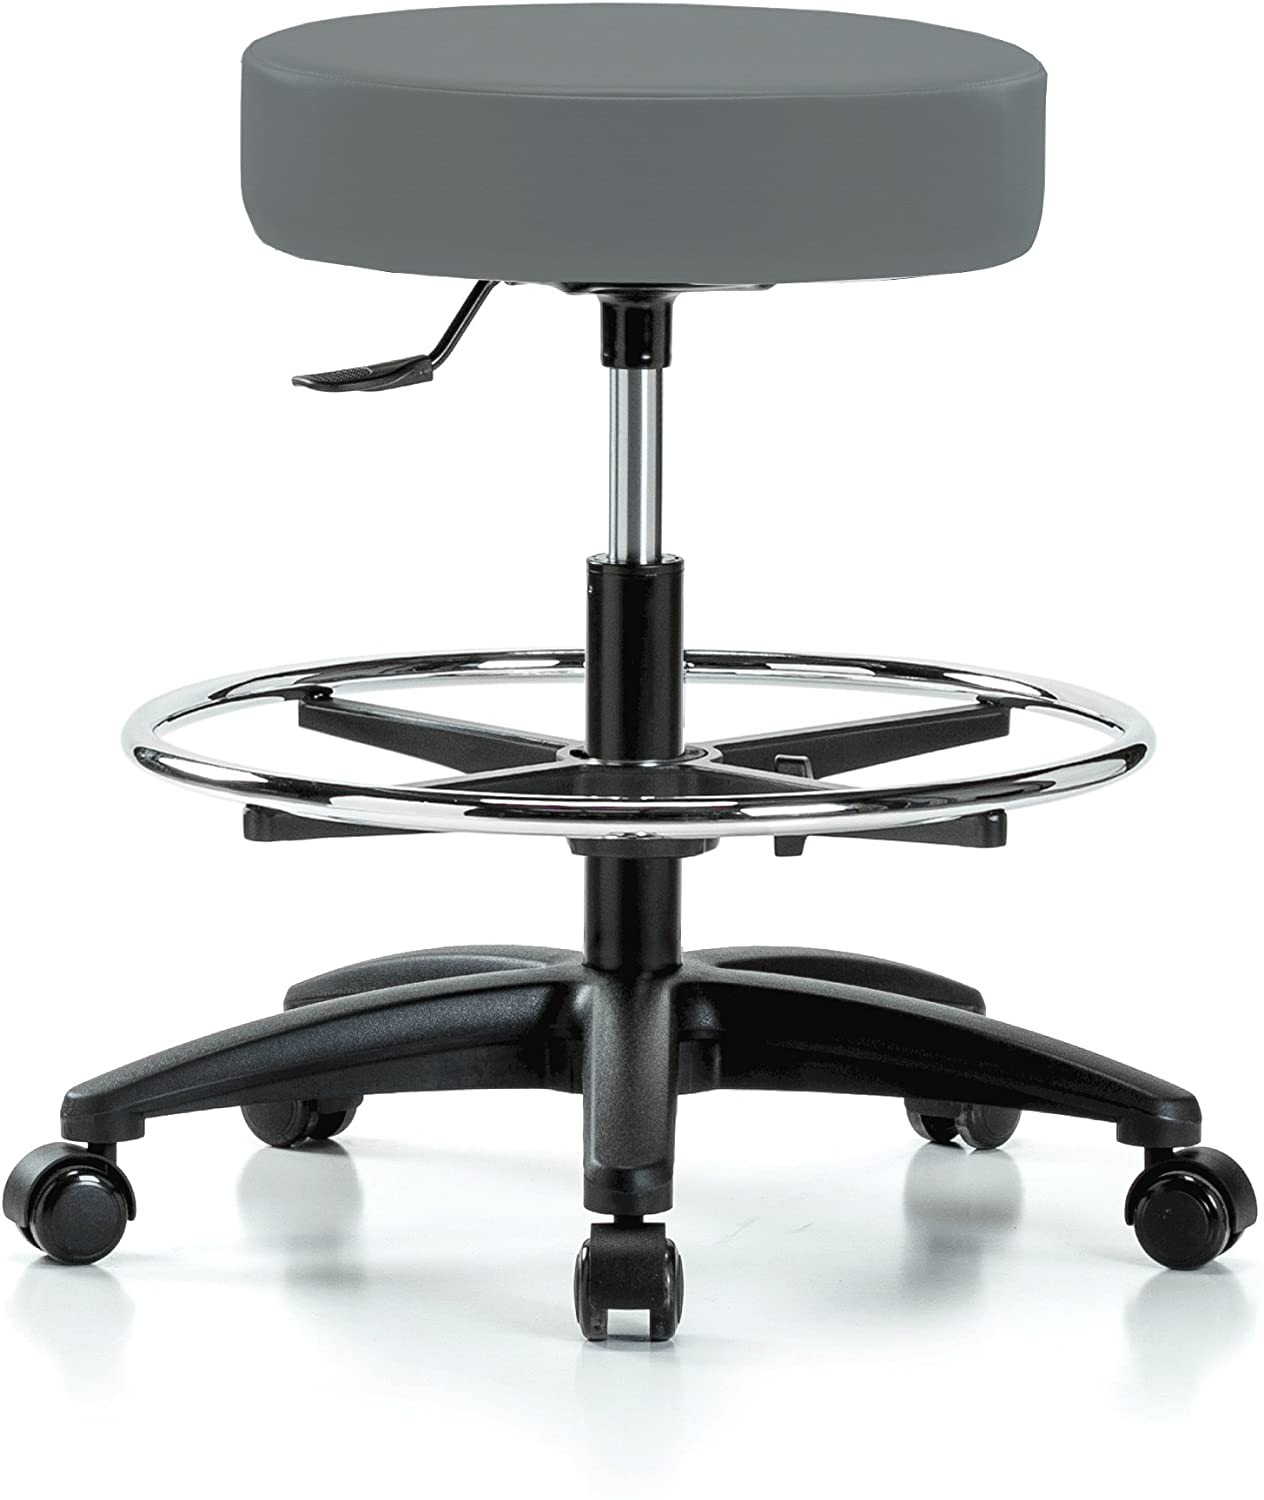 Perch Rolling Single Lever Height Adjustable Swivel Stool with Foot Ring for Hardwood or Tile Floors, Workbench Height, Cinder Fabric